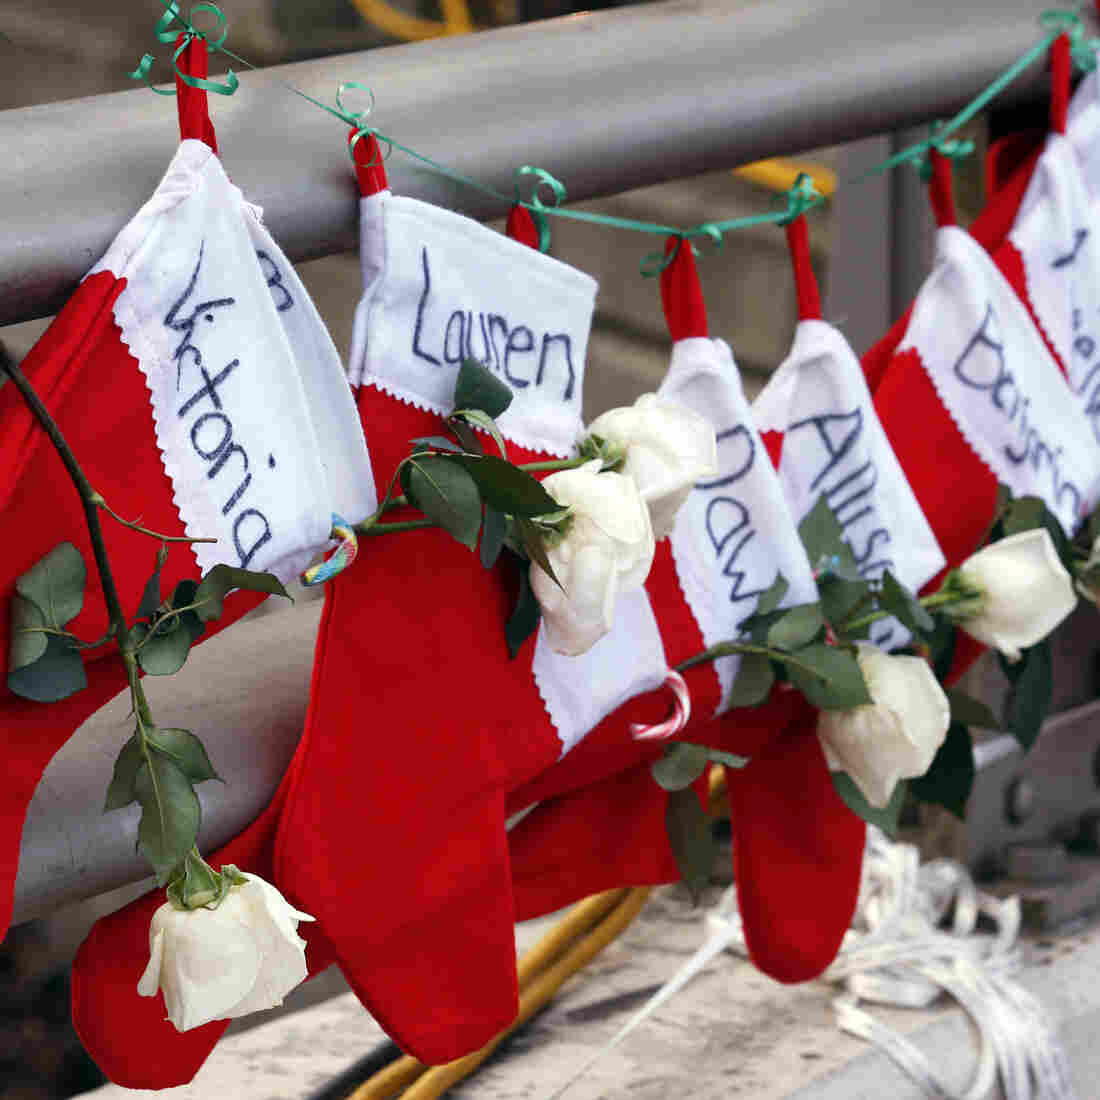 Christmas stockings with the names of shooting victims hang from a railing in the Sandy Hook village of Newtown, Conn.